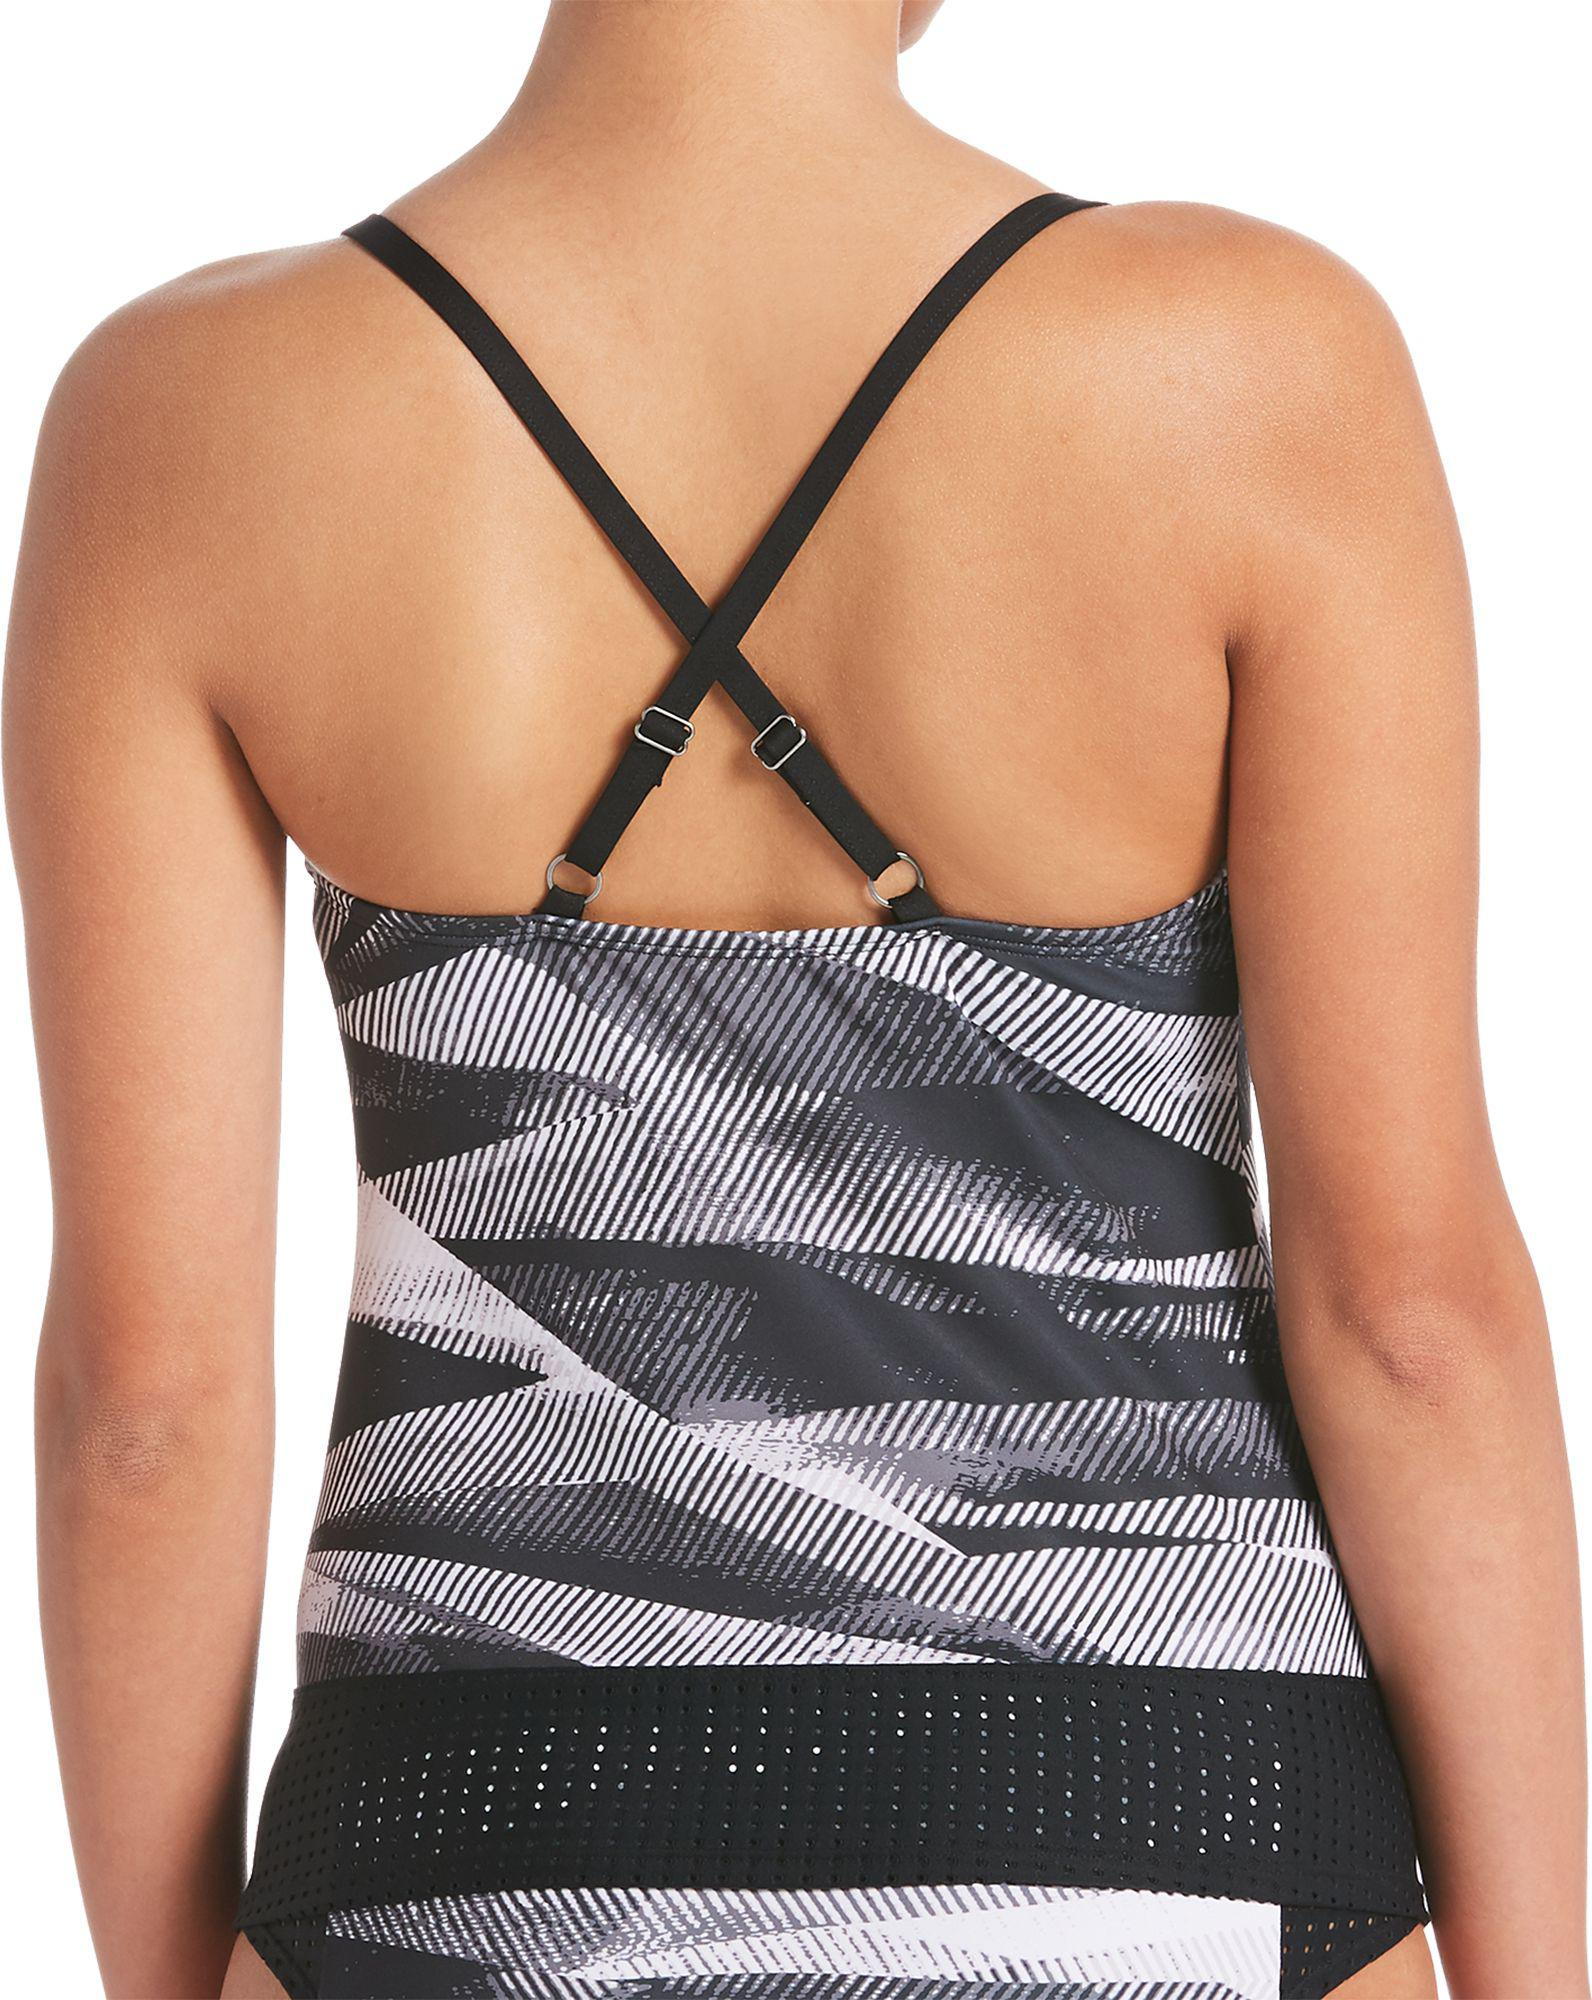 b2e6faa9ca6 Lyst - Nike Lineup Crossback Tankini Swim Top in Black